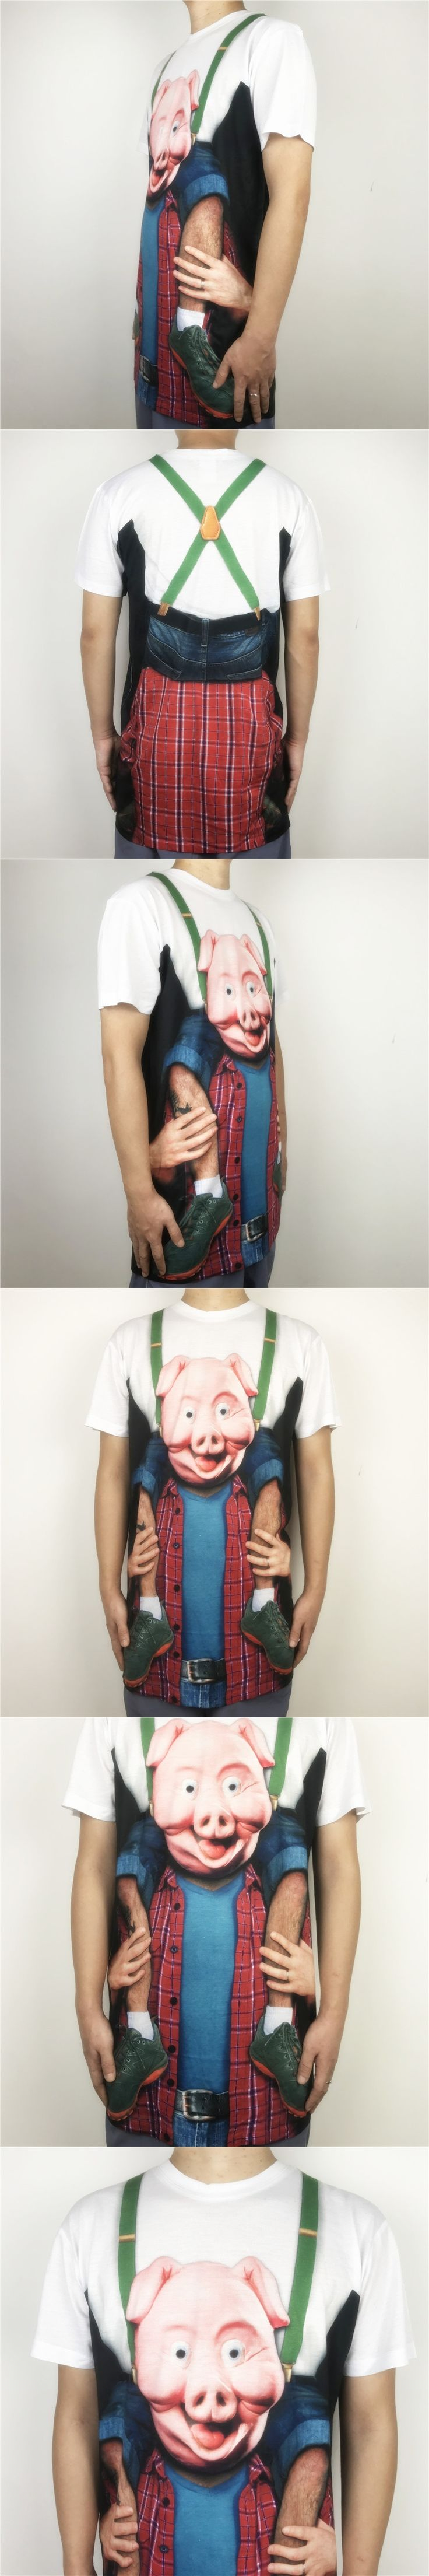 Funny Pig Head Printed Prank T Shirts for Men Halloween Party Short Sleeve Tee Plus Size S-2XL